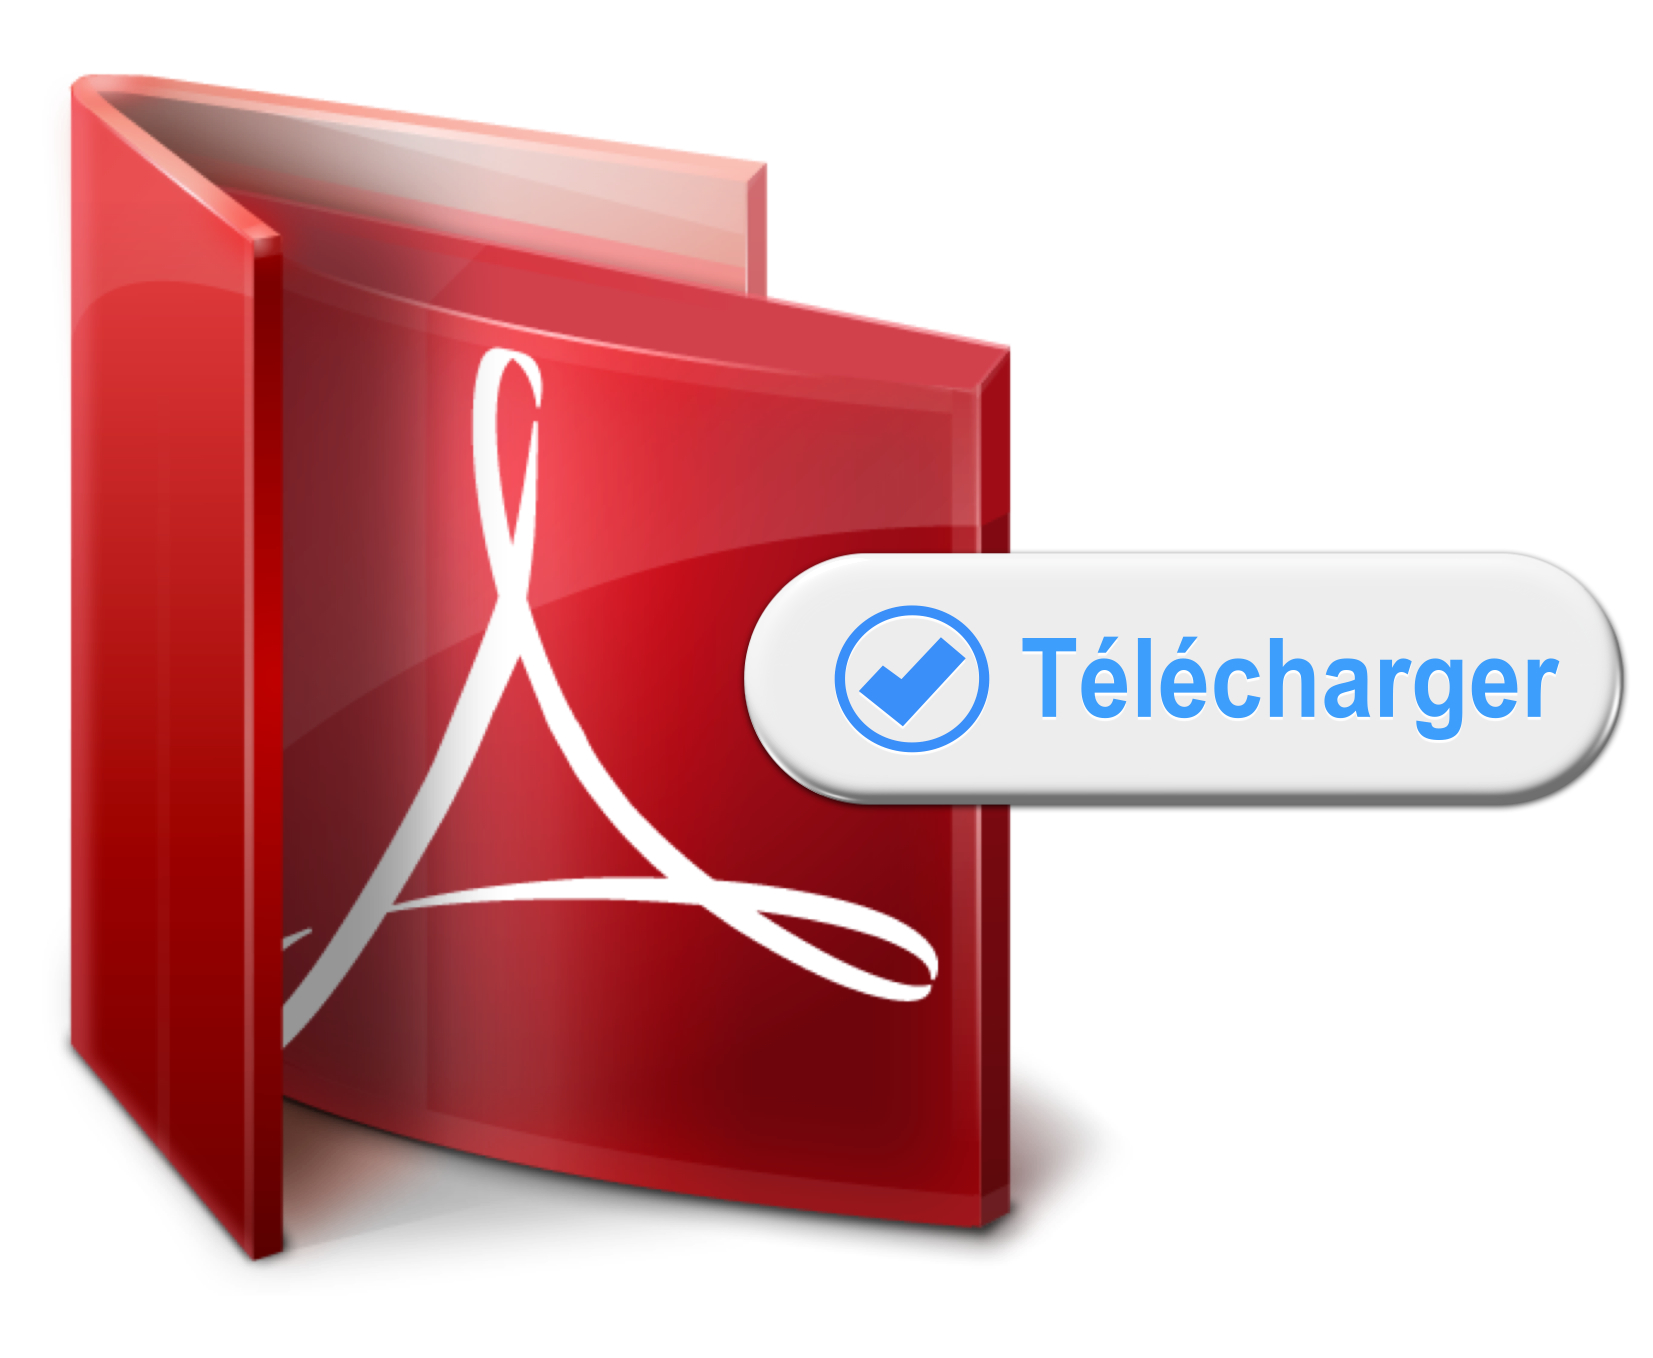 icone telecharger pdf